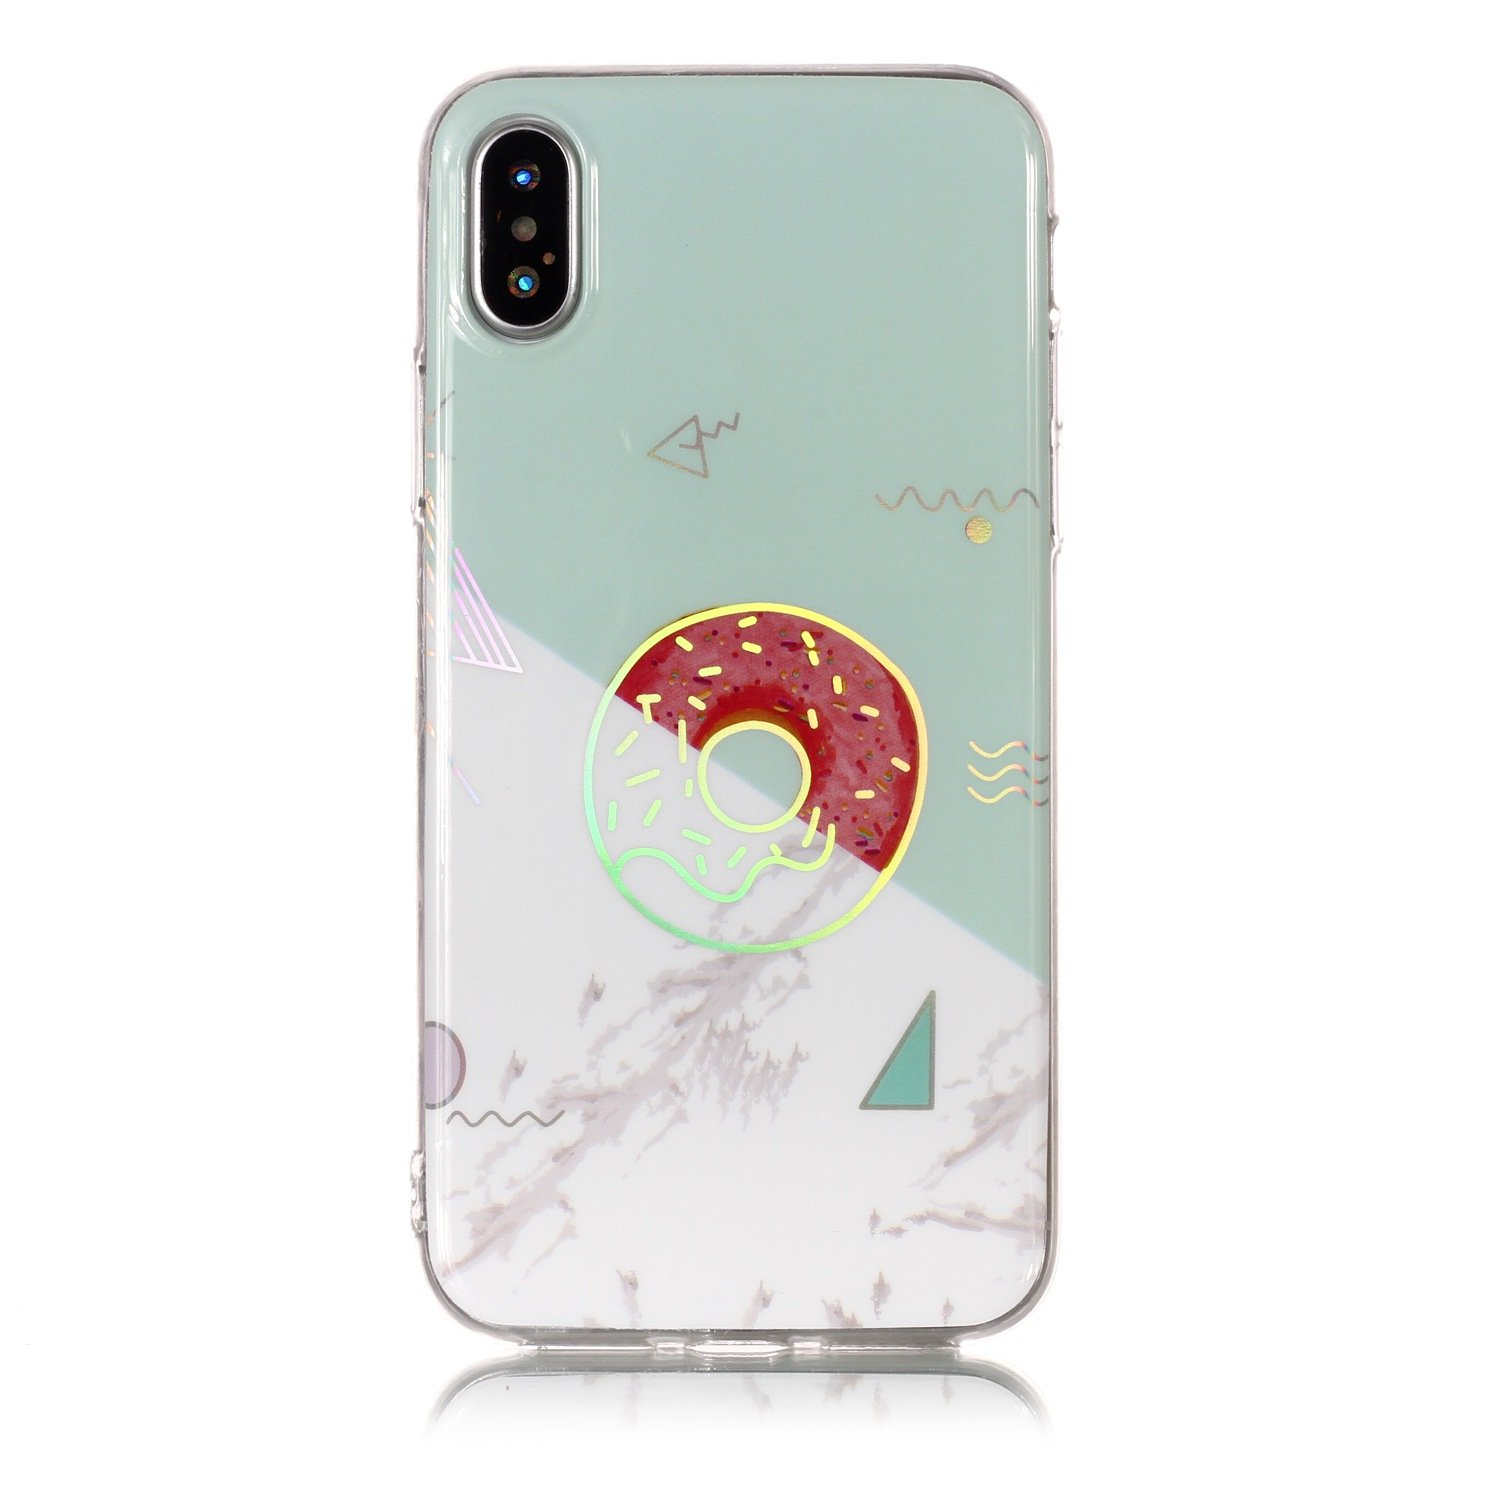 Cover for iPhone XR,iPhone XR Case,BtDuck Silicone Case Marble Pattern Phone Case Transparent Clear Cover Glitter Case Shockproof Shell Soft Gel Case TPU Back Cover Bumper Phone Protective with Laser Design Crystal Clear Case Protective Rubber Cover for i